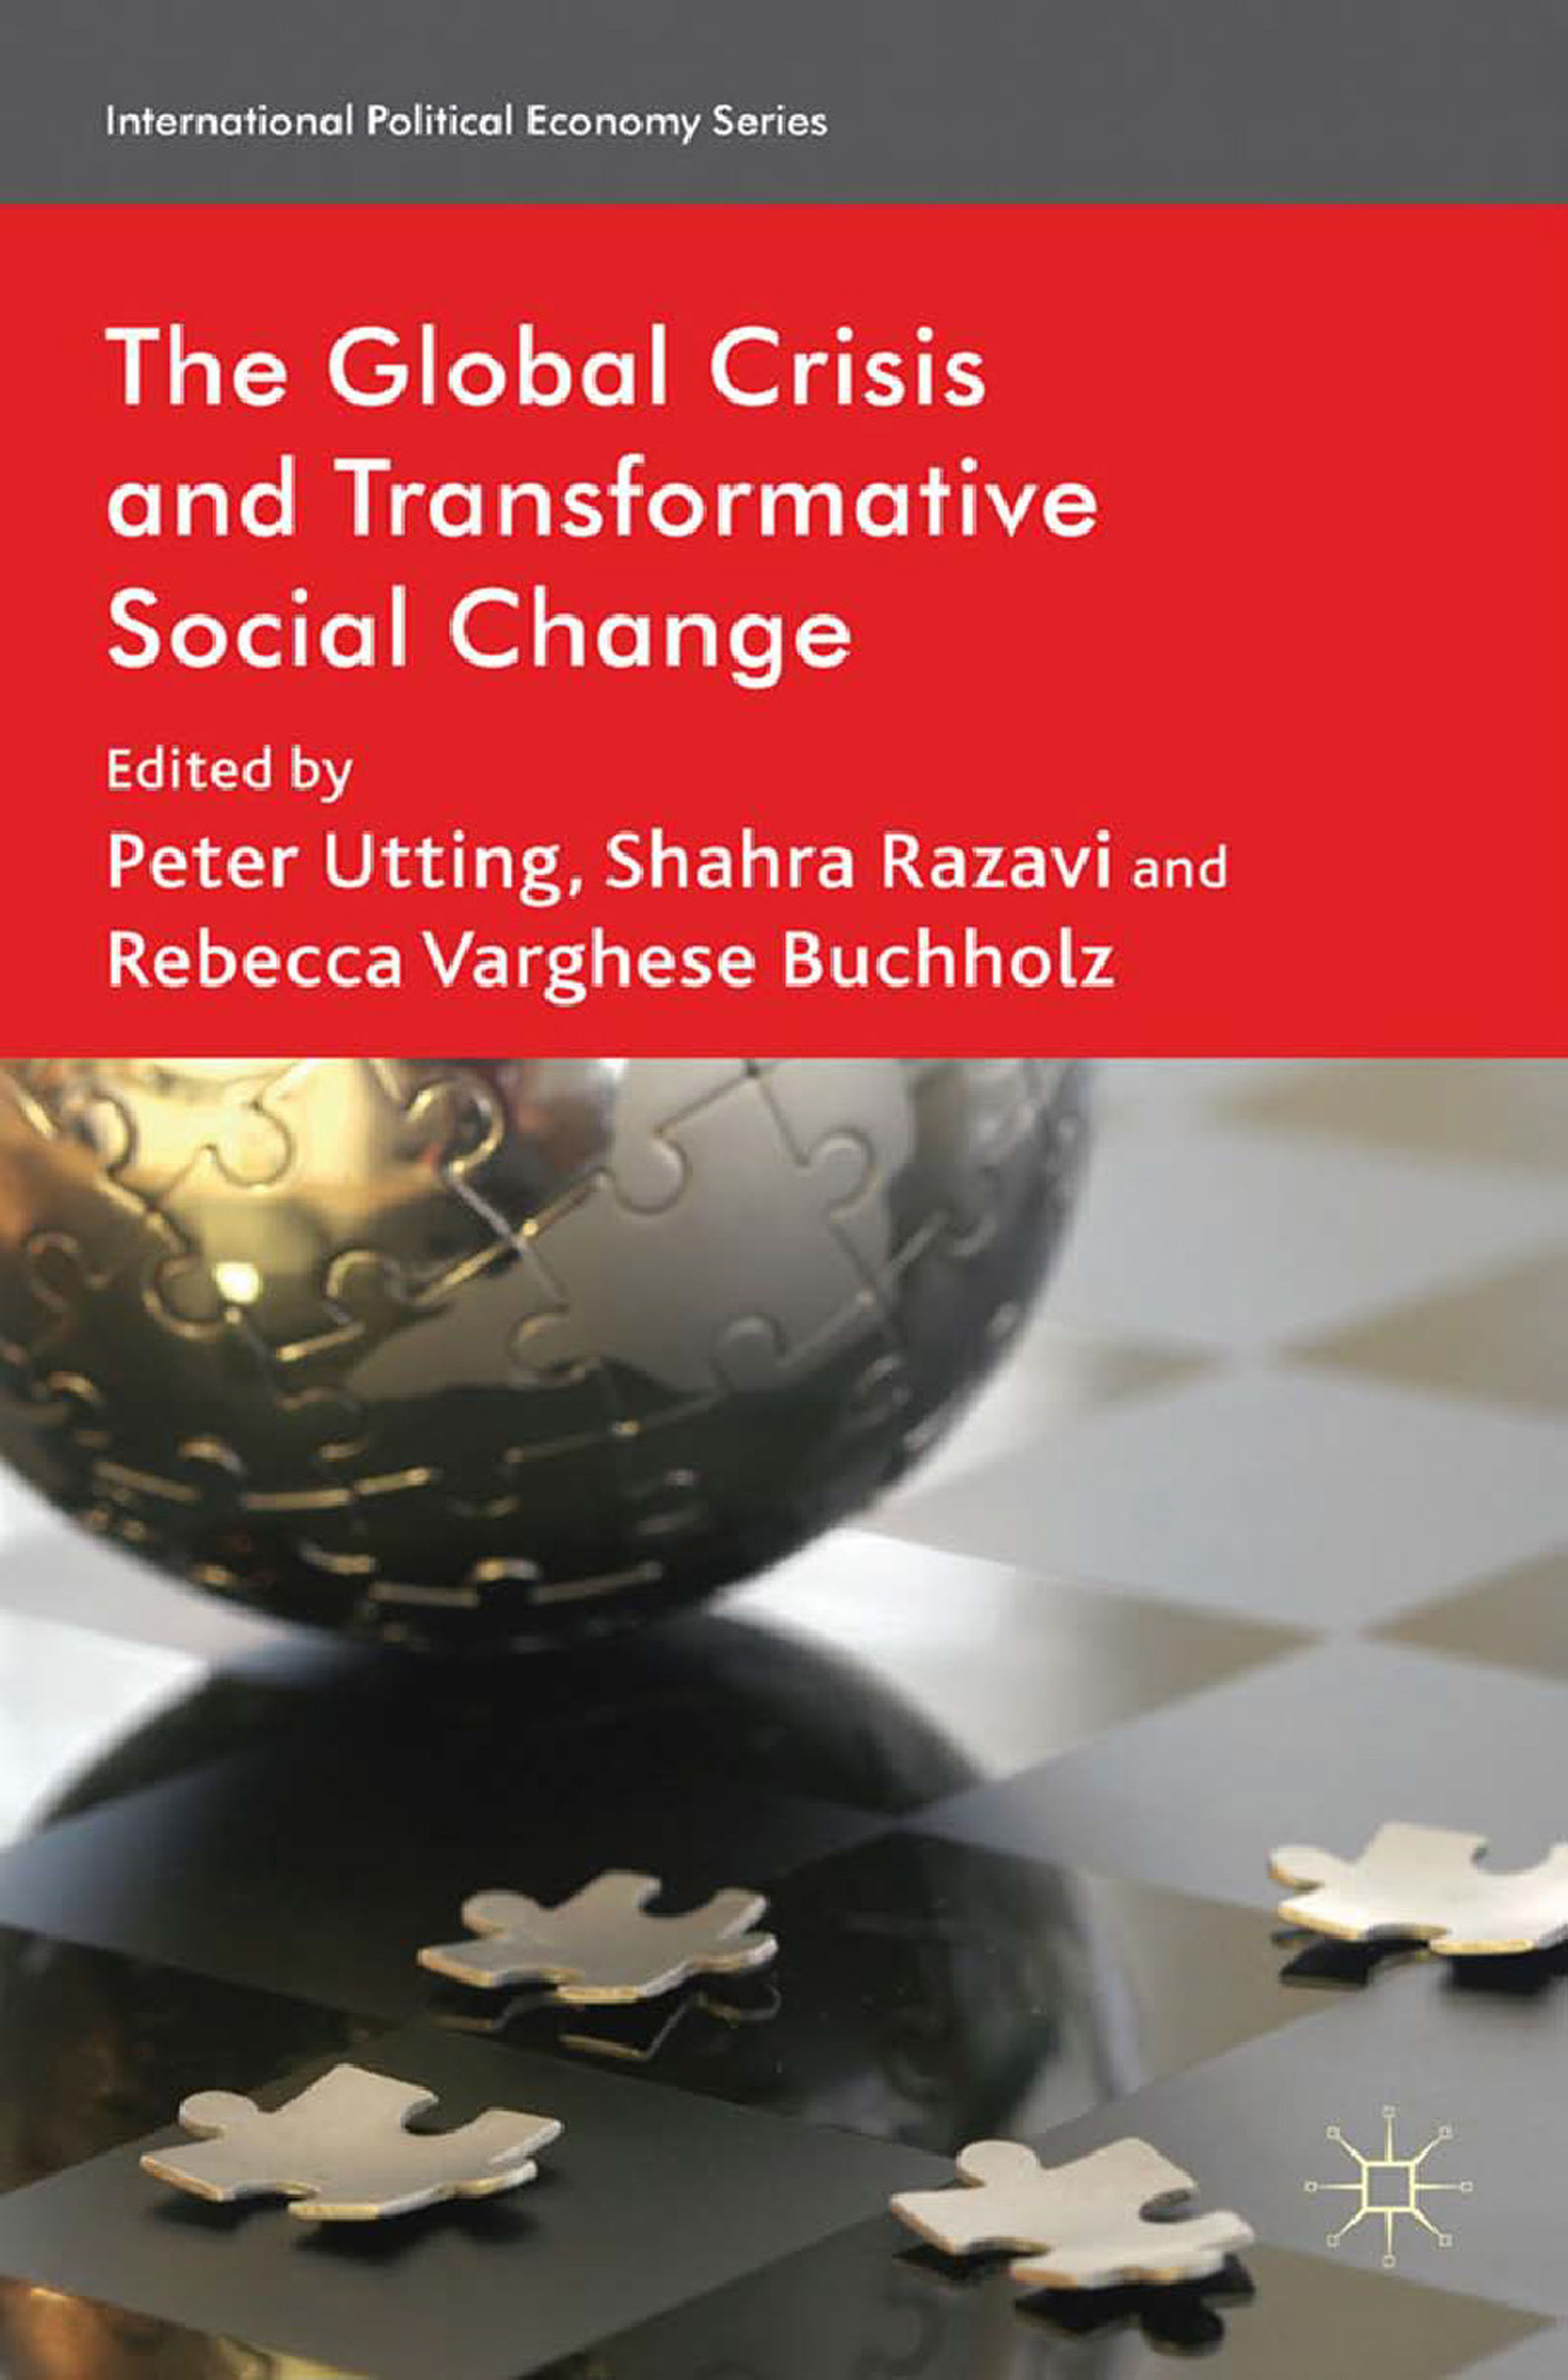 Buchholz, Rebecca Varghese - The Global Crisis and Transformative Social Change, ebook